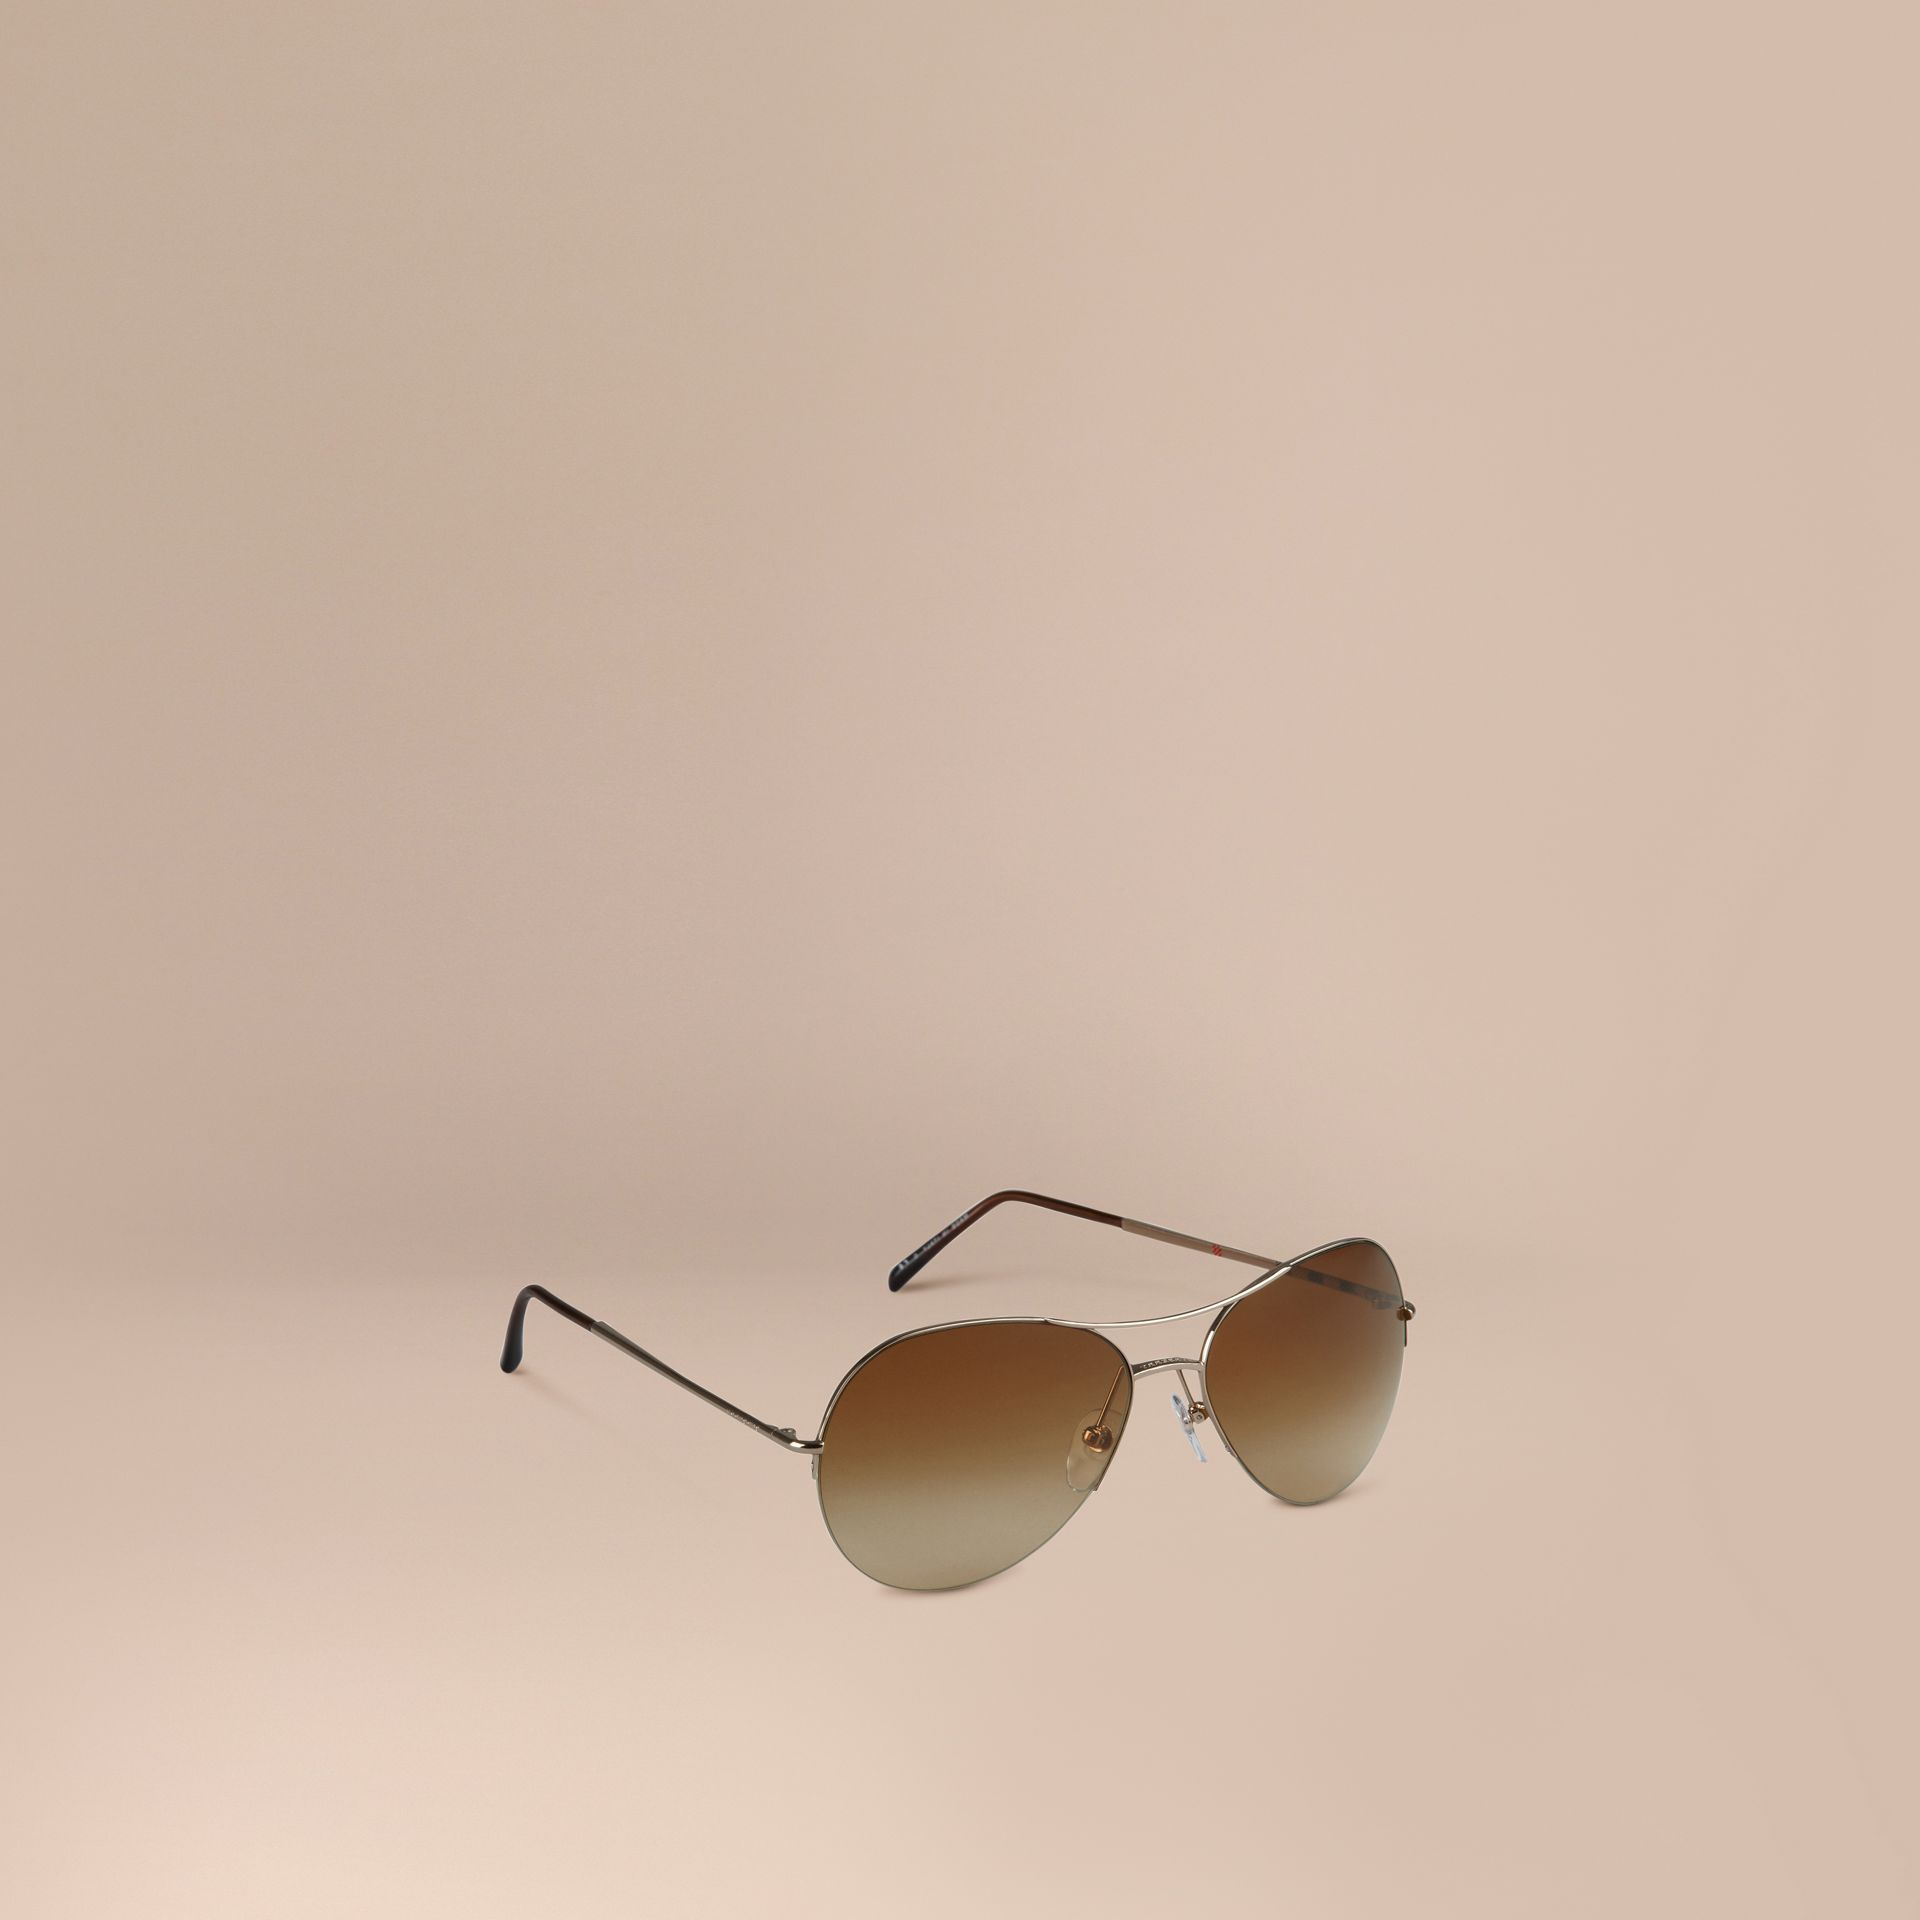 Half-Frame Pilot Sunglasses in Pale Gold - Women | Burberry Australia - gallery image 1